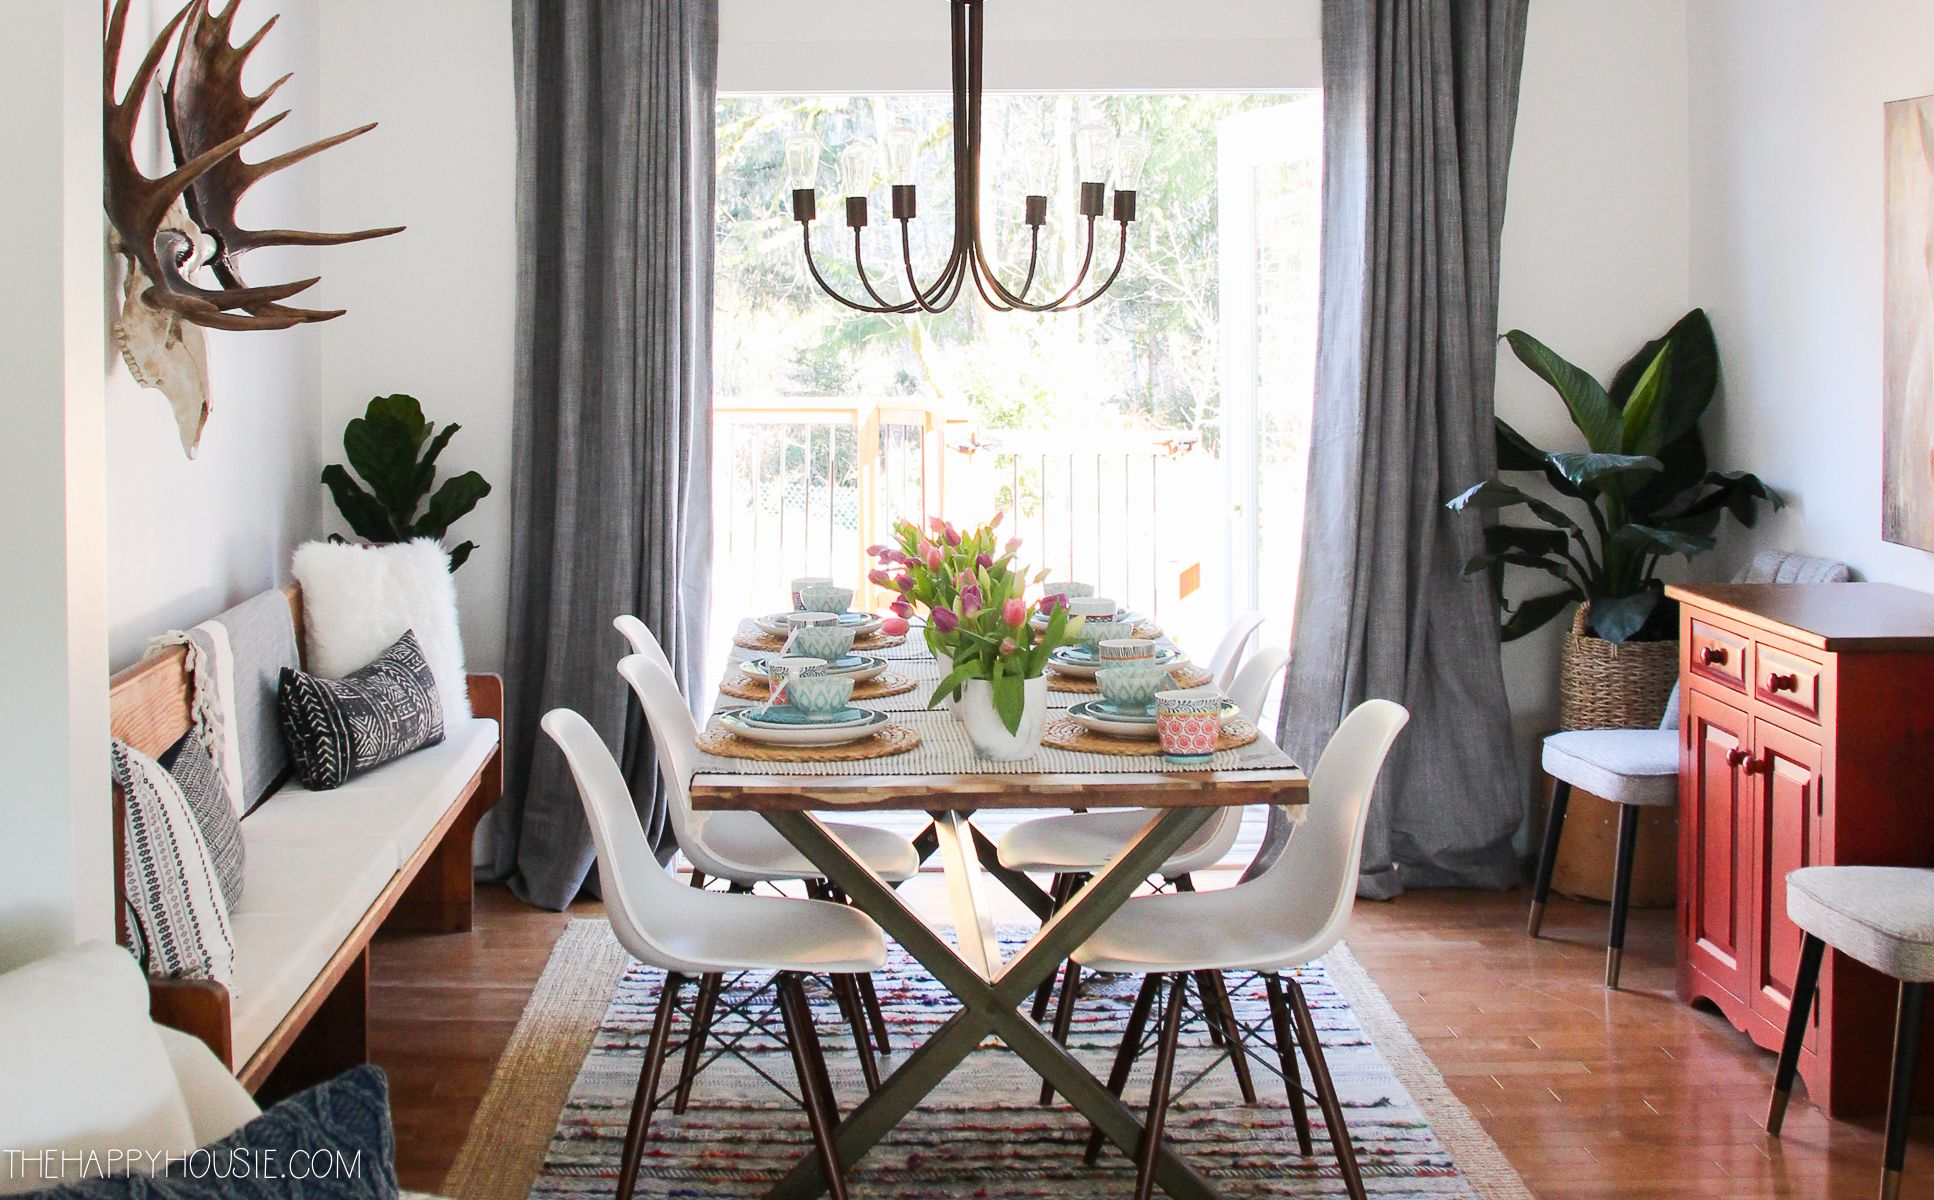 Simple Boho Chic Spring Dining Room Tablescape The Happy Housie Contemporary Decor Living Room Dining Room Decor Boho Dining Room